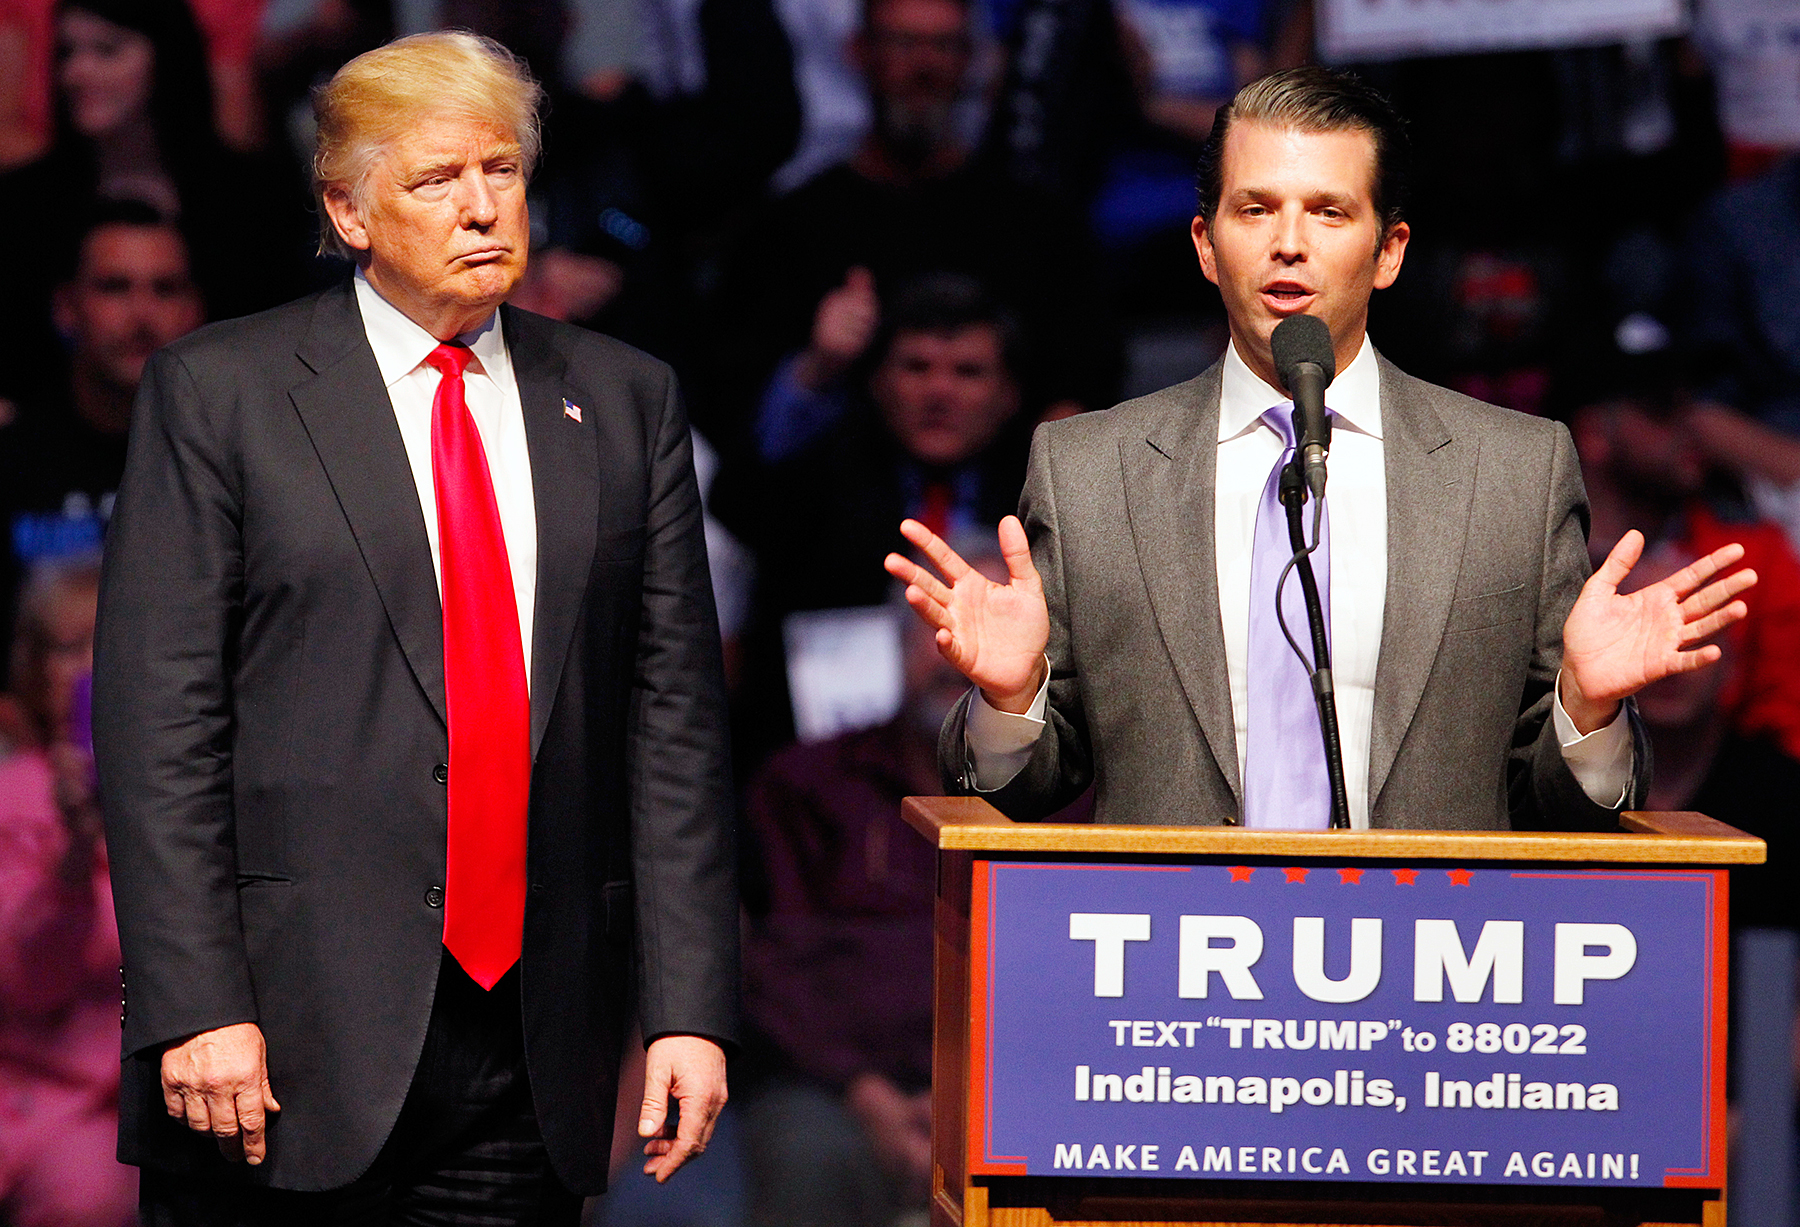 Donald Trump Jr's wife hospitalised after opening mail containing white powder